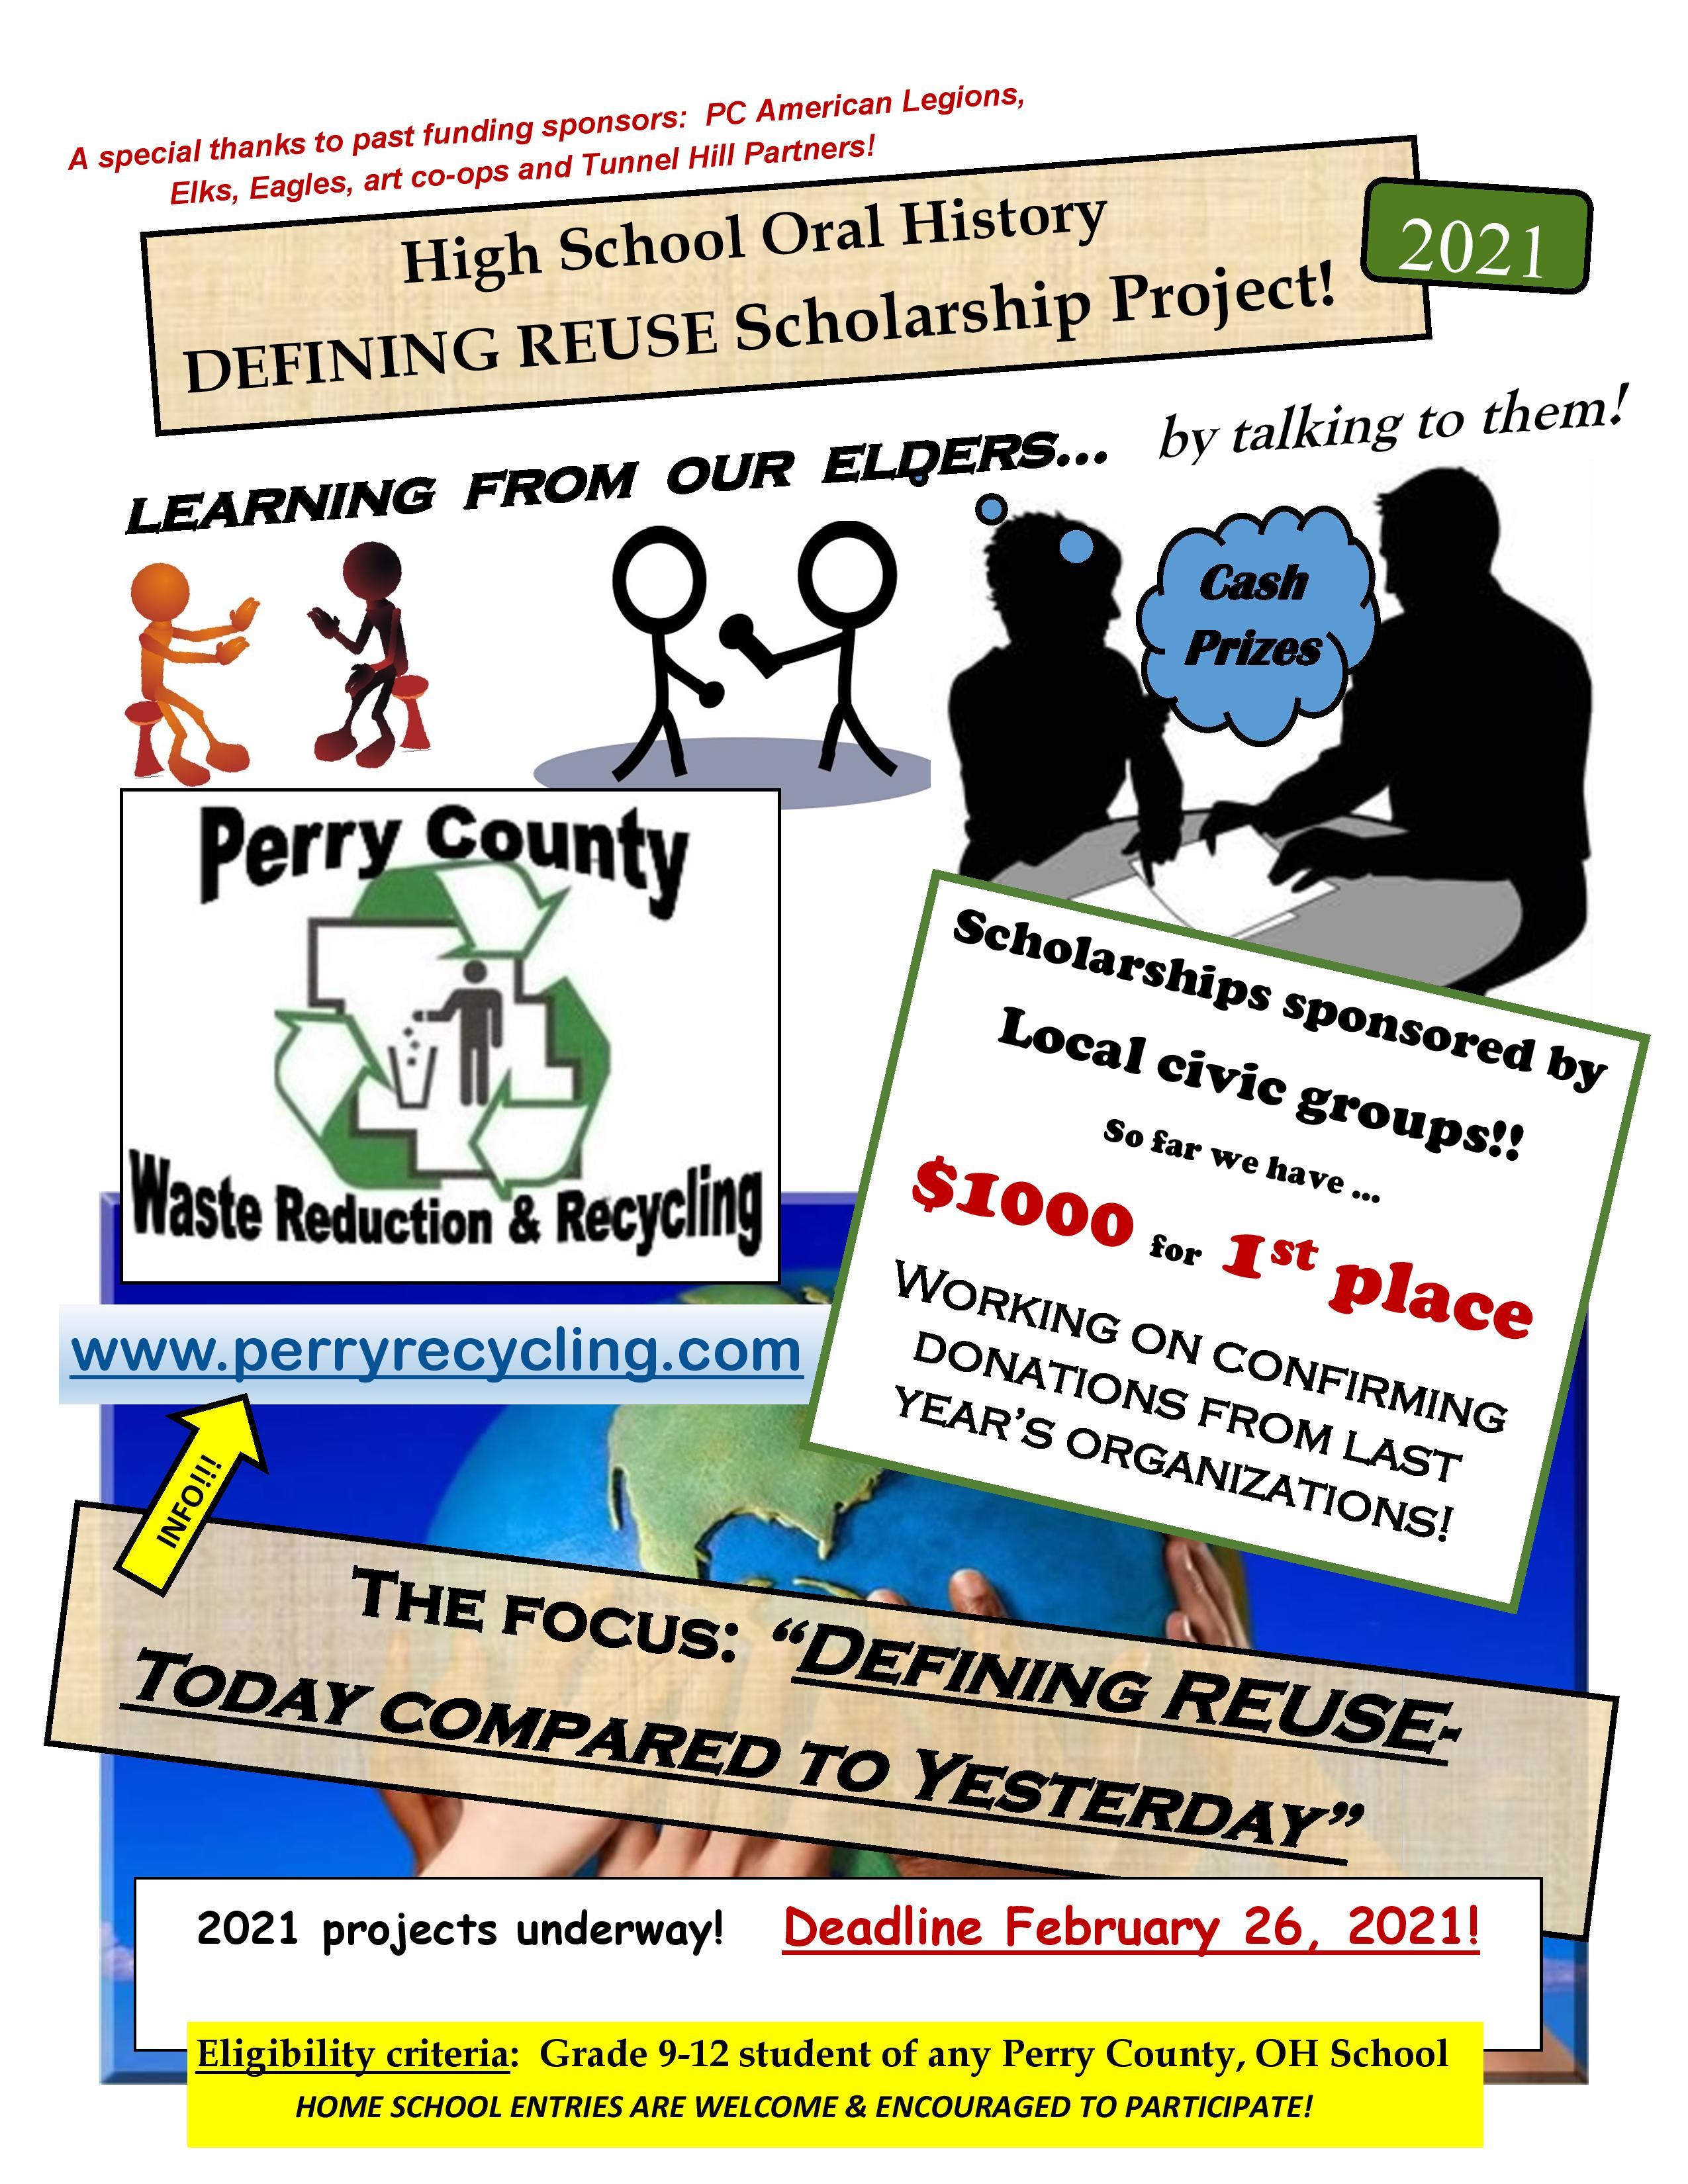 reuse flyer for scholarship